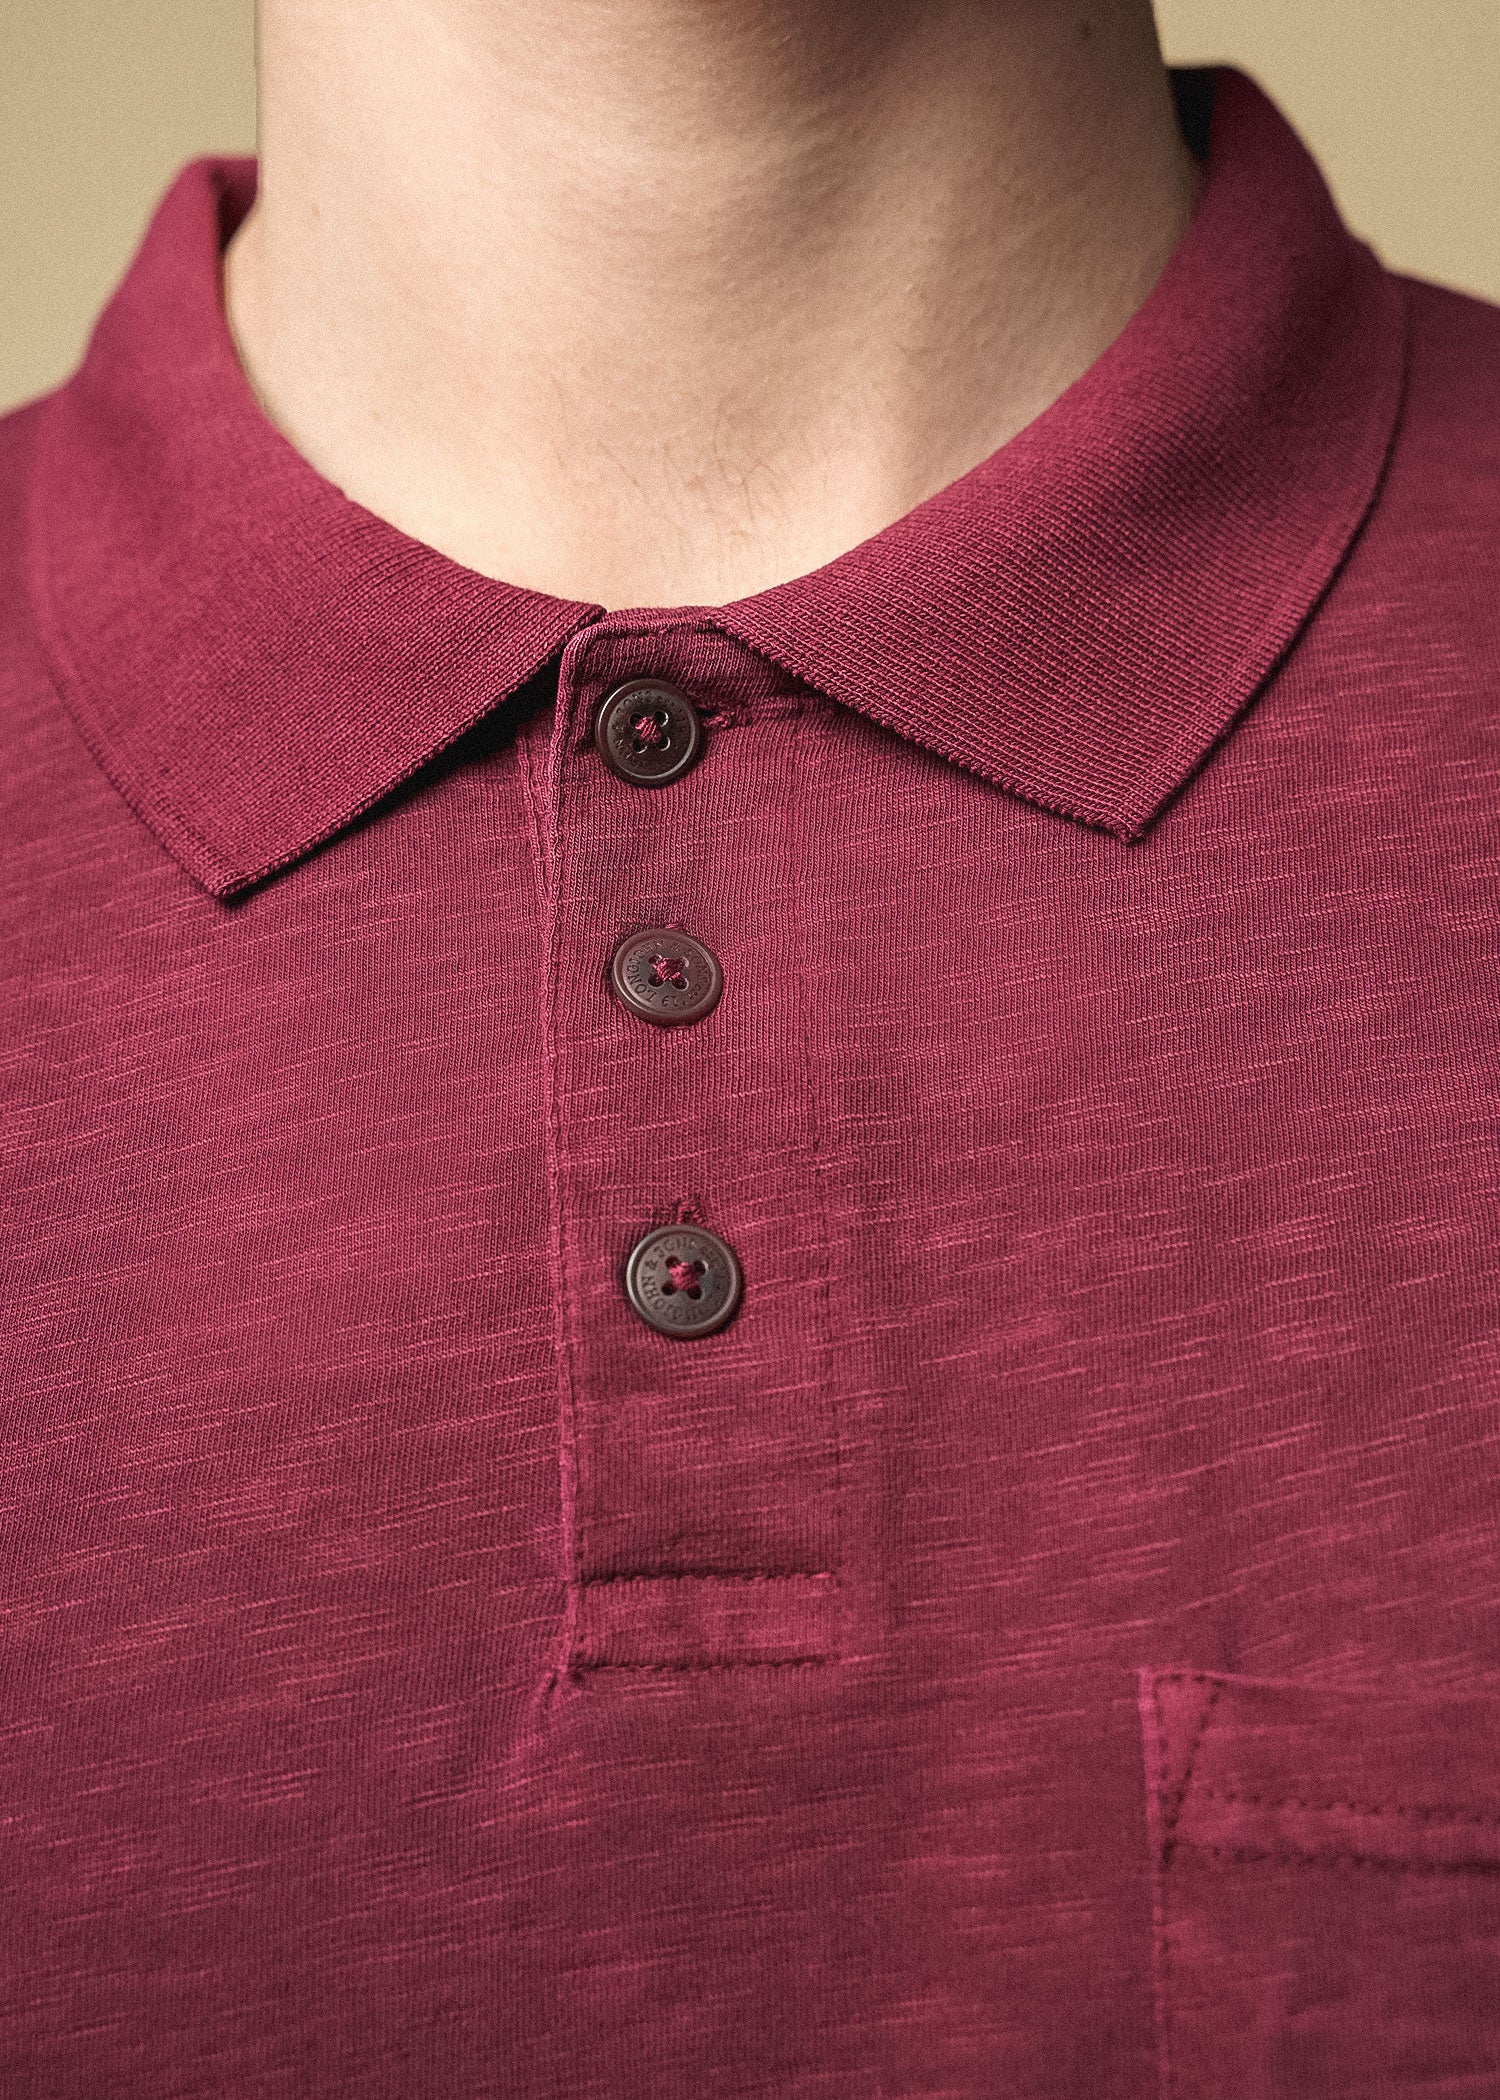 tall_mens_slub_pocket_polo_vintage_sumacred-collar